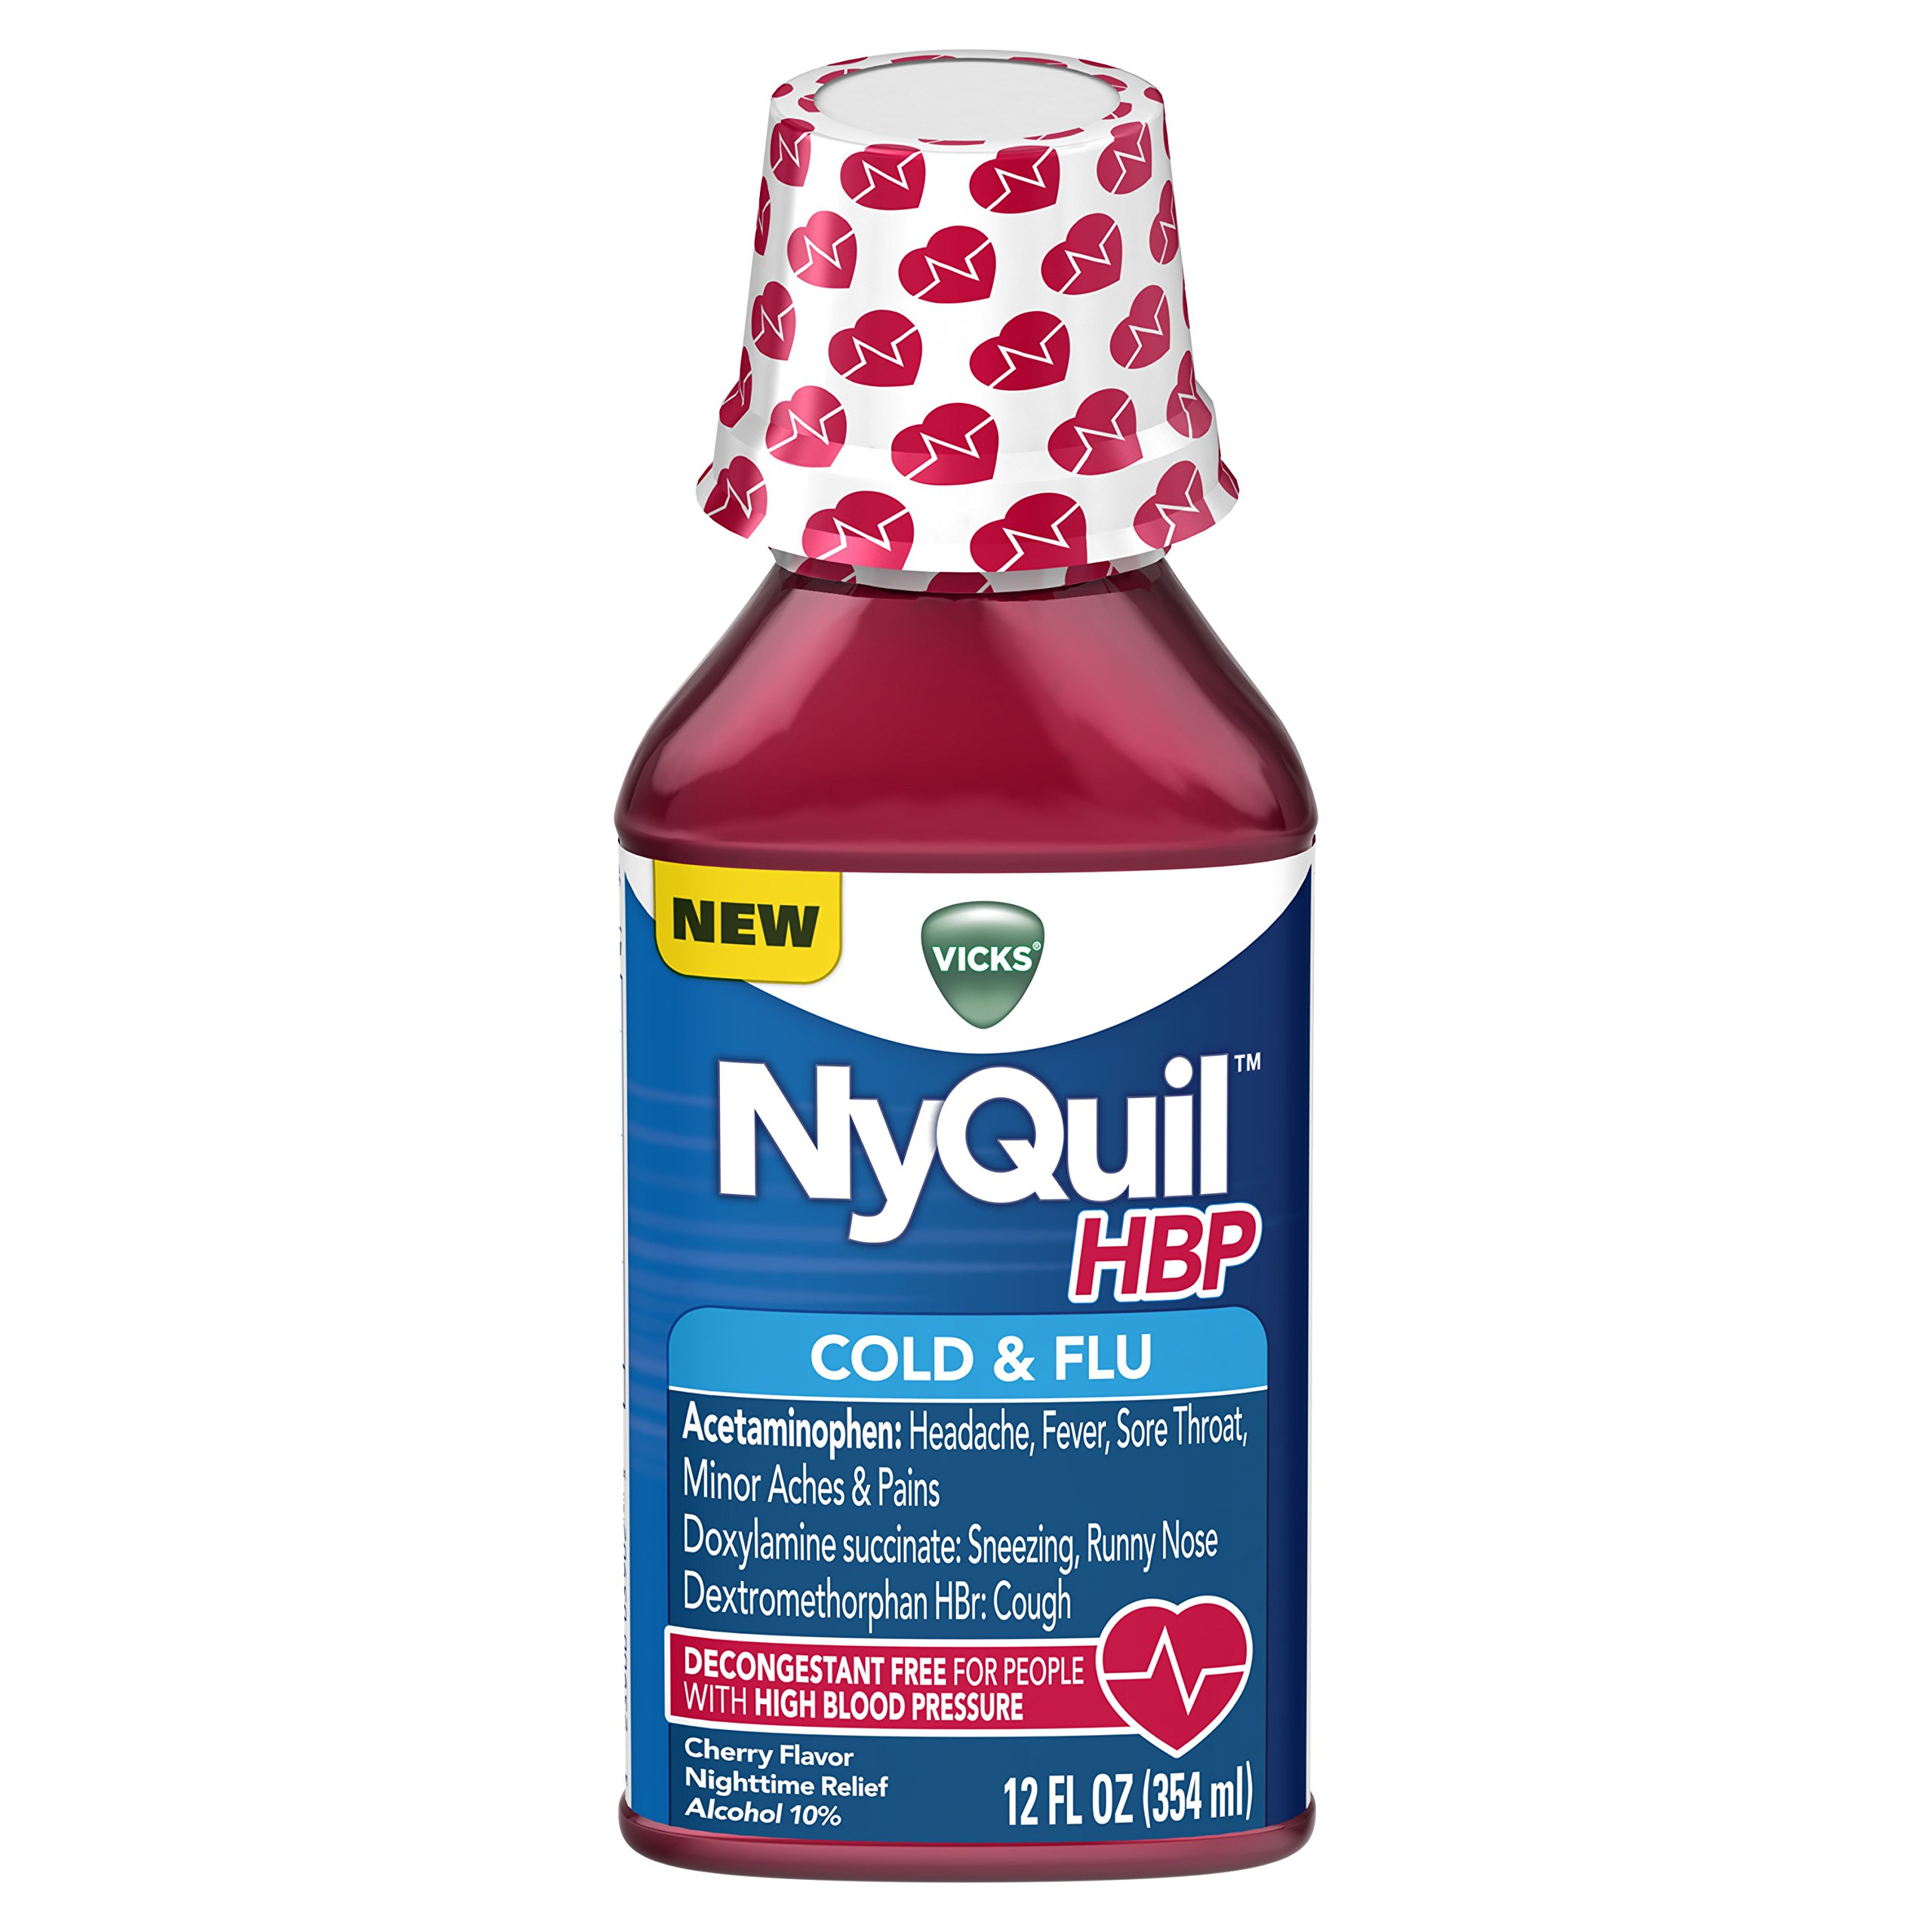 Cough Cold and Flu Nighttime Relief, Cherry Liquid 12 FL oz